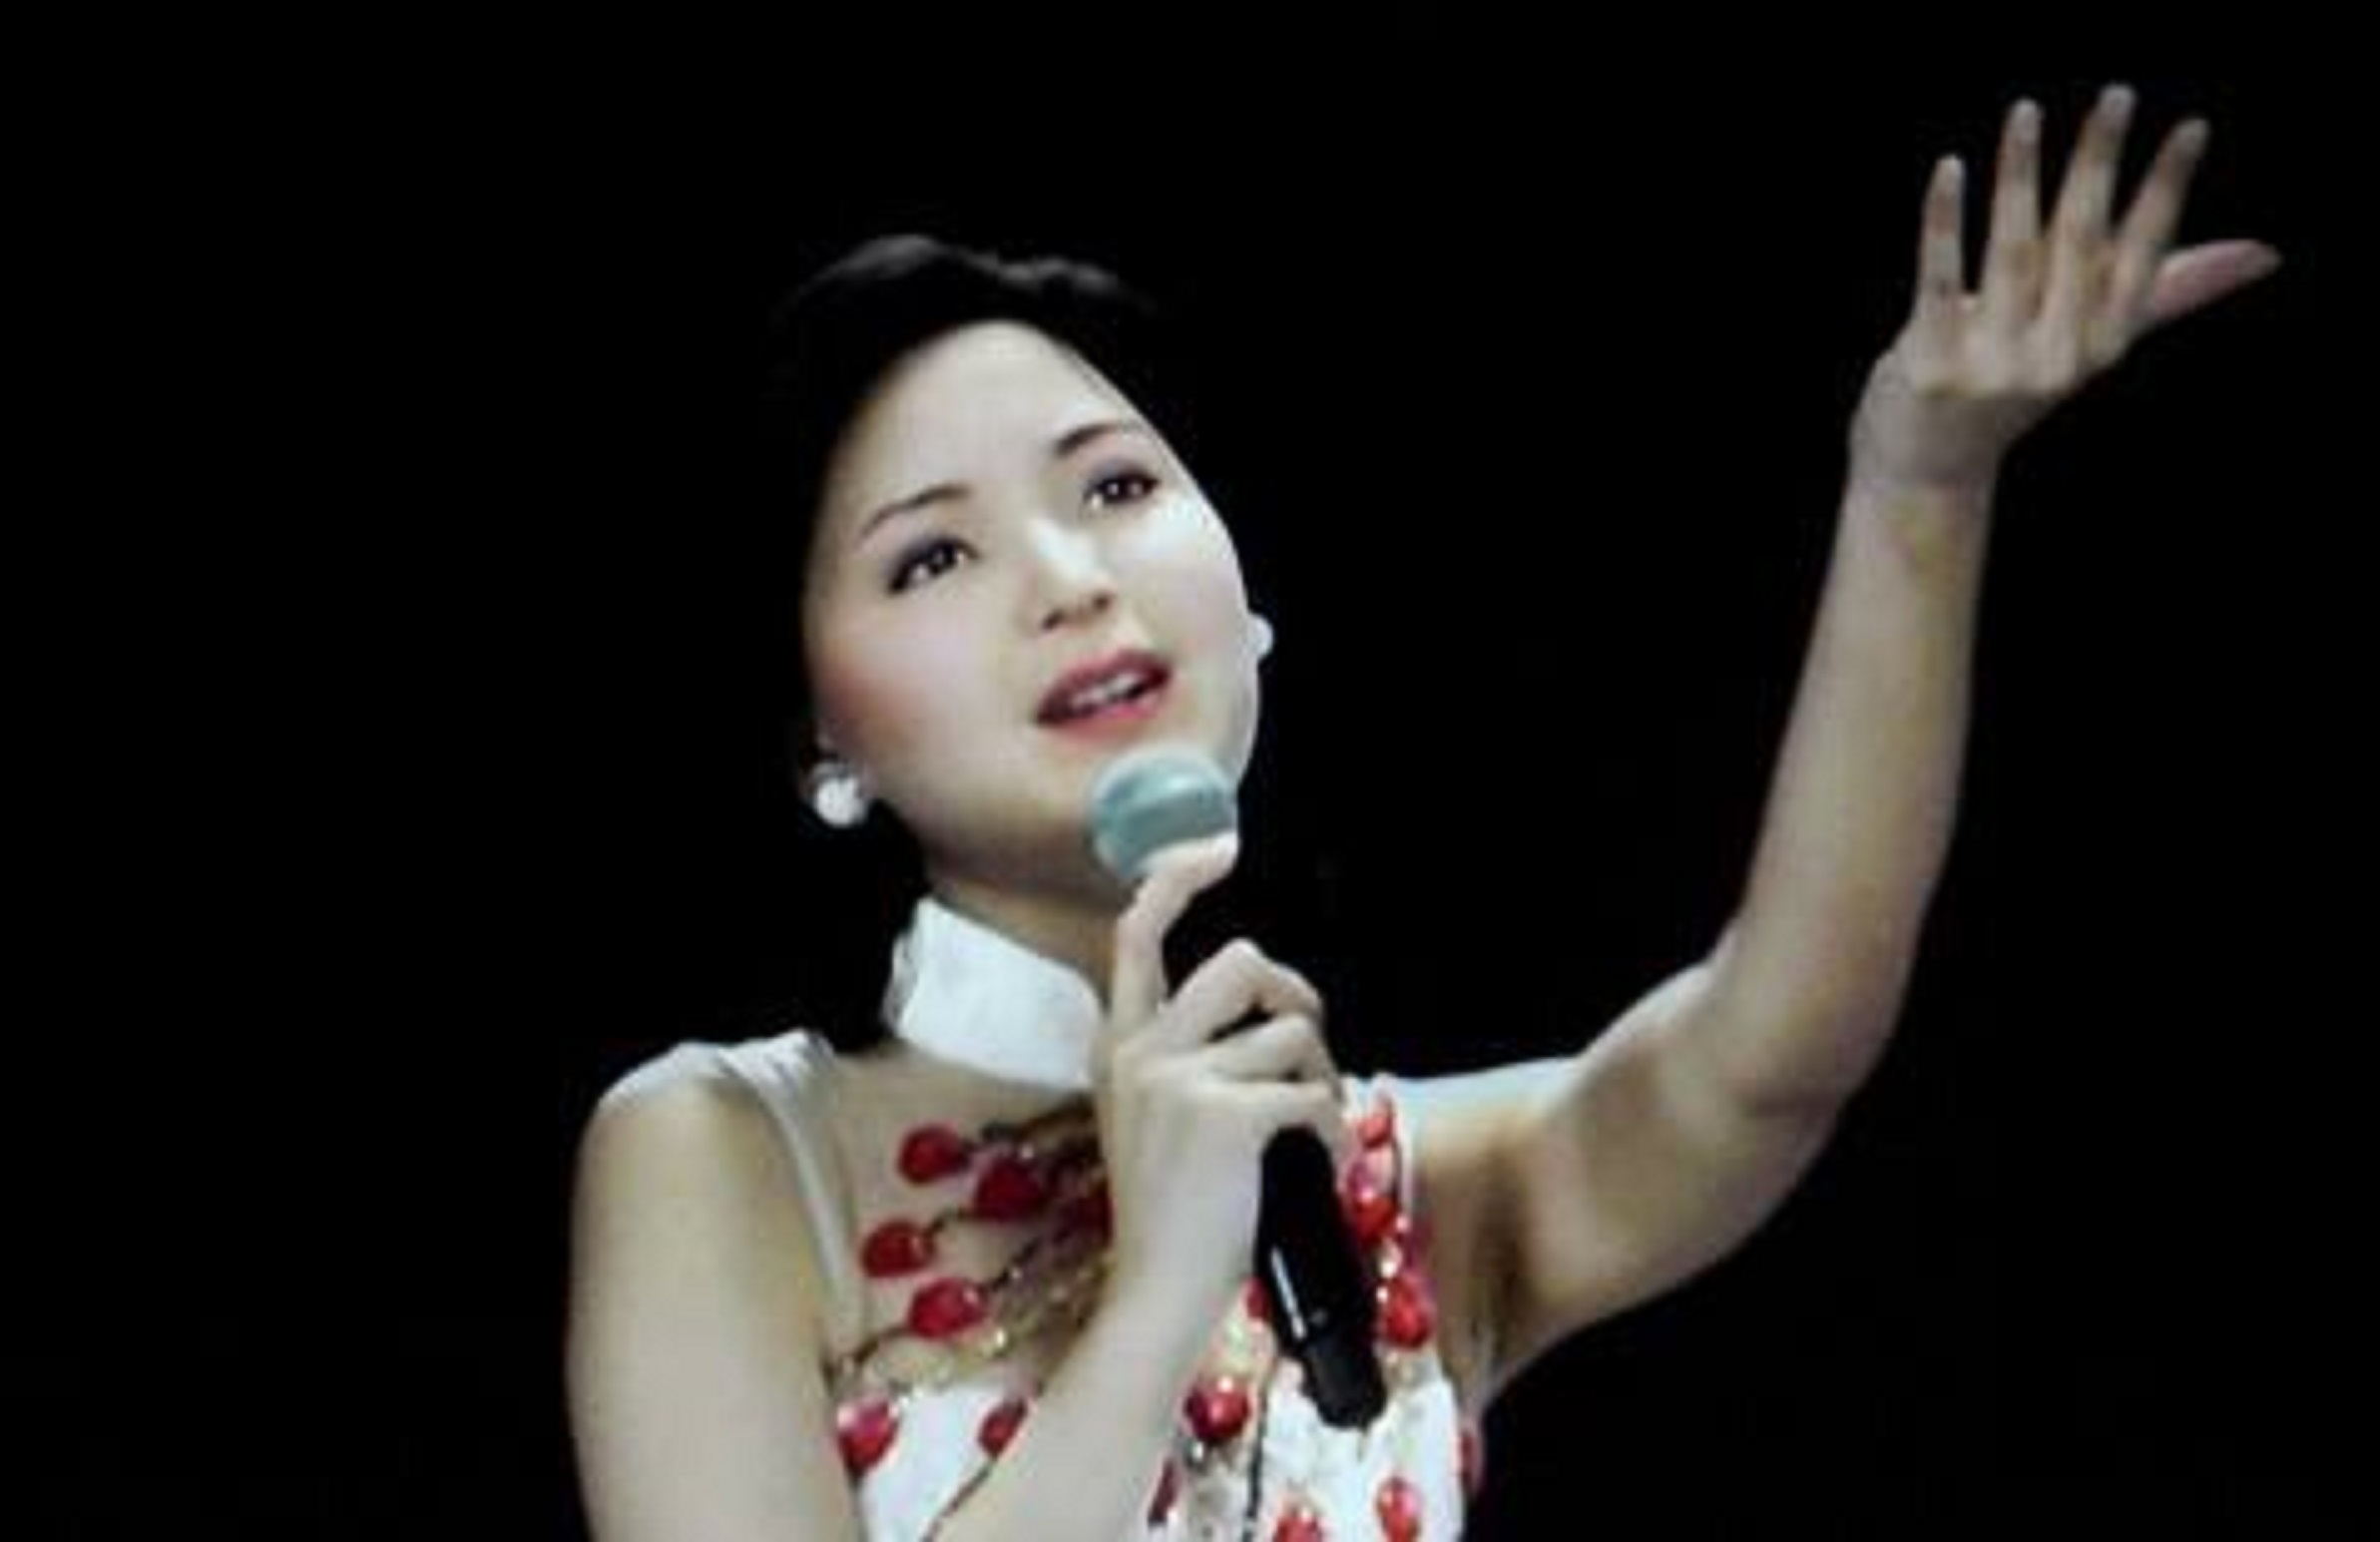 Nan Wang De Yan Jing 难忘的眼睛 Unforgettable Eyes Lyrics 歌詞 With Pinyin By Deng Li Jun 邓丽君 Teresa Teng